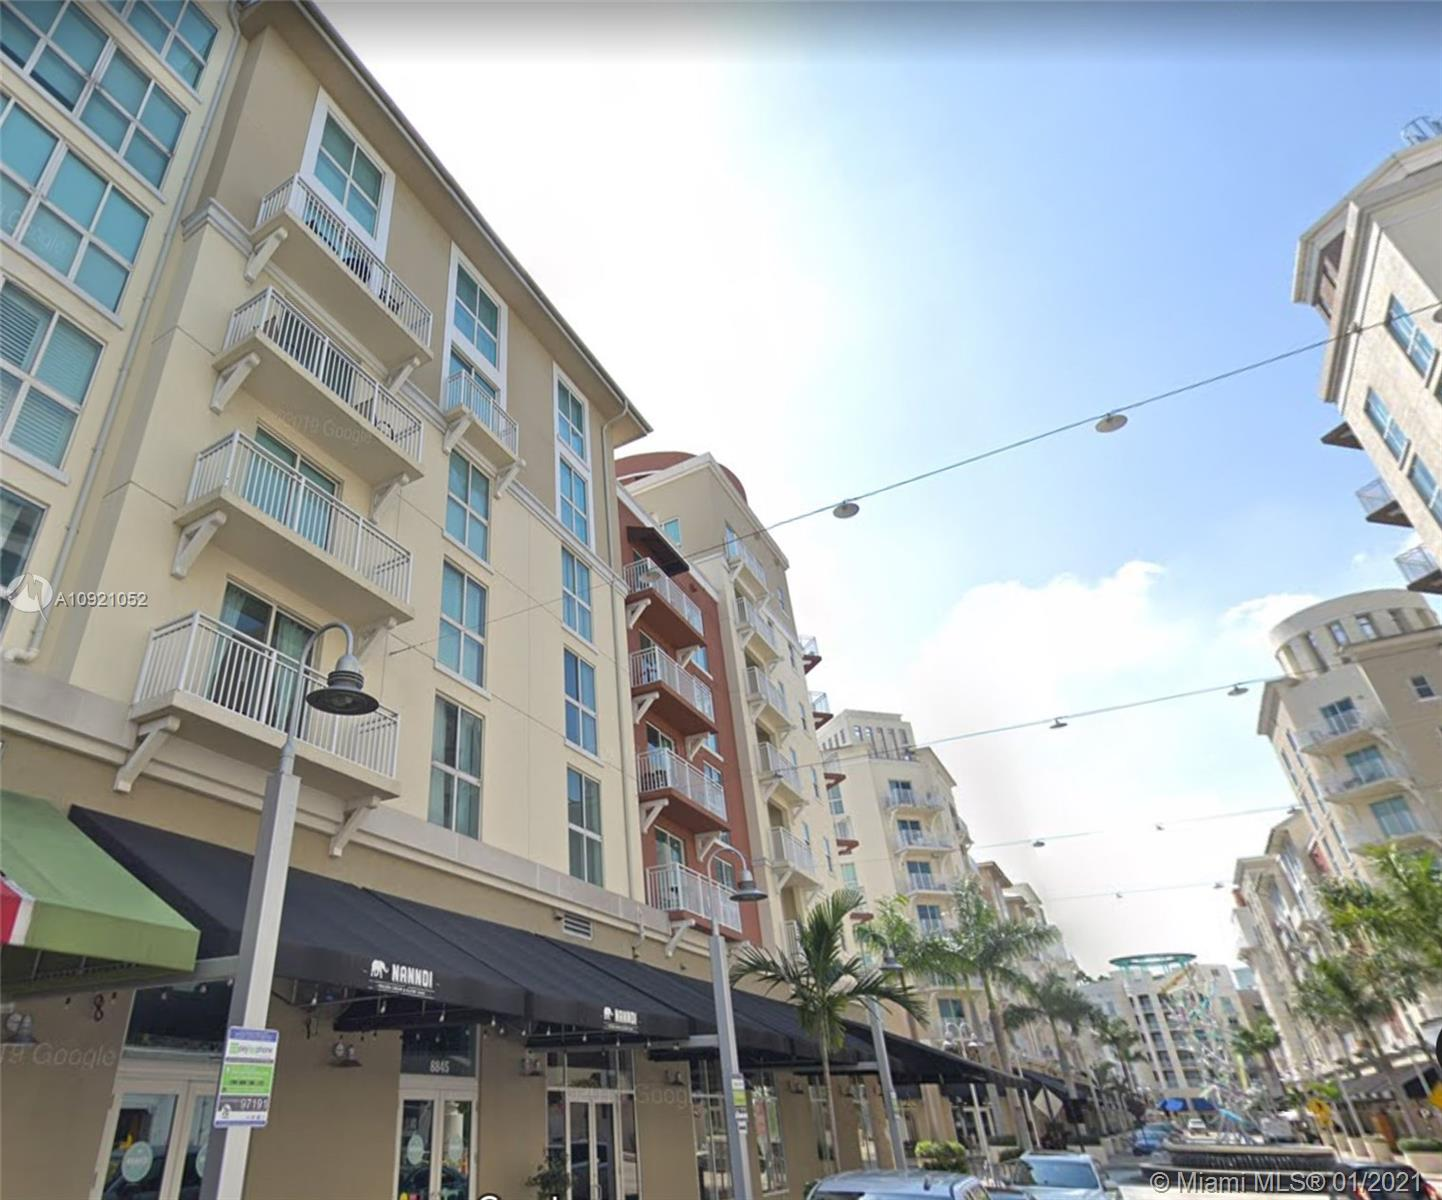 Downtown Dadeland Building A #A406 - 7266 SW 88 St #A406, Miami, FL 33156